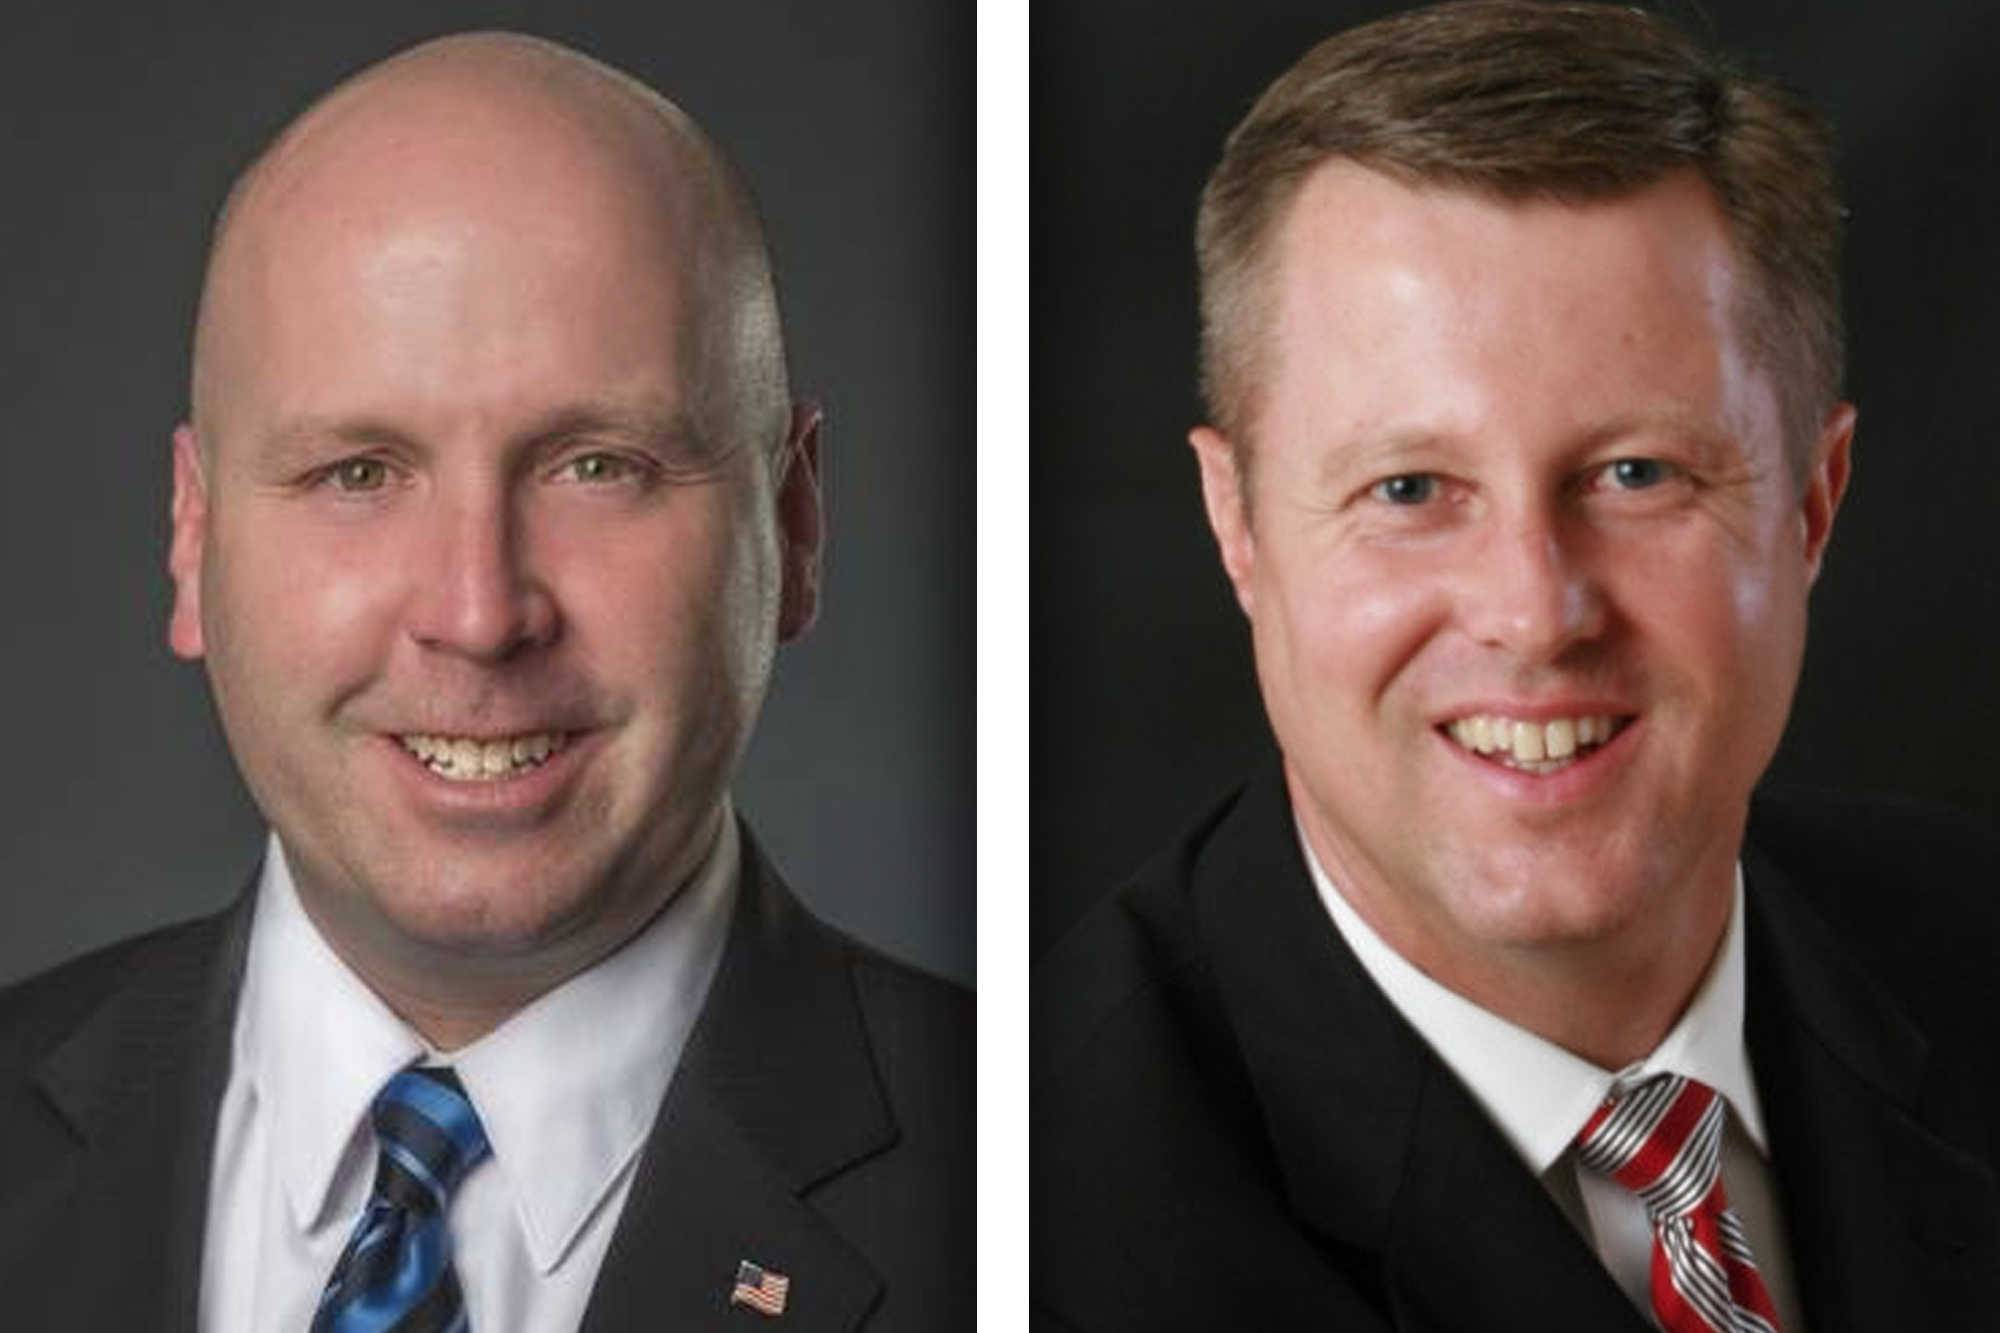 Democrat Thomas Cullerton, left, and Republican Seth Lewis are running for Illinois Senate in the 23rd District.